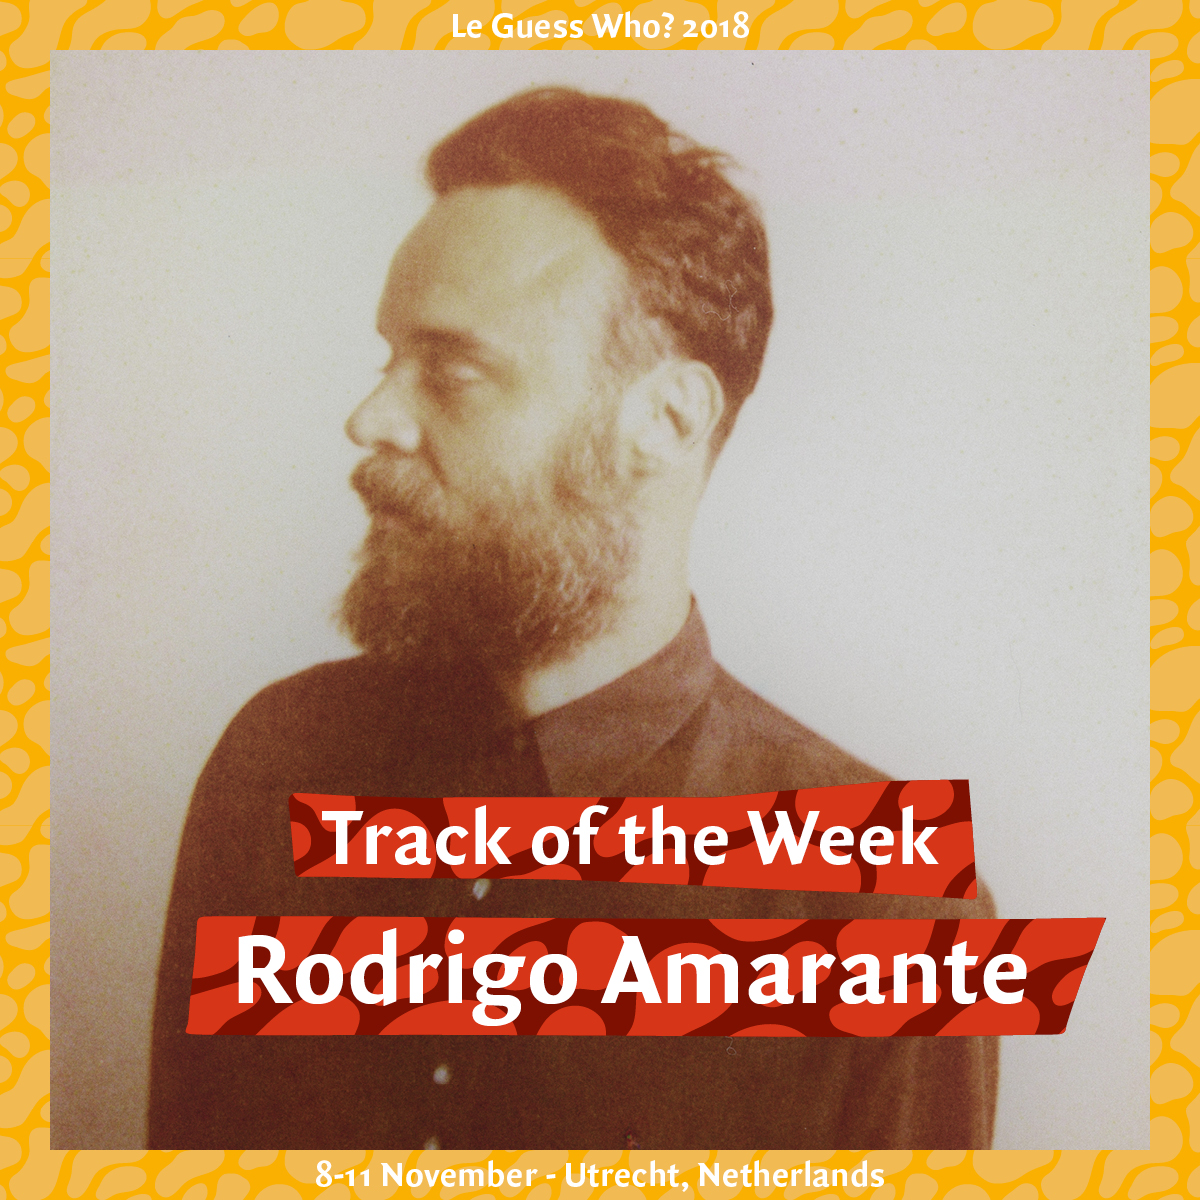 Track of the Week #2: Rodrigo Amarante - 'Tardei'